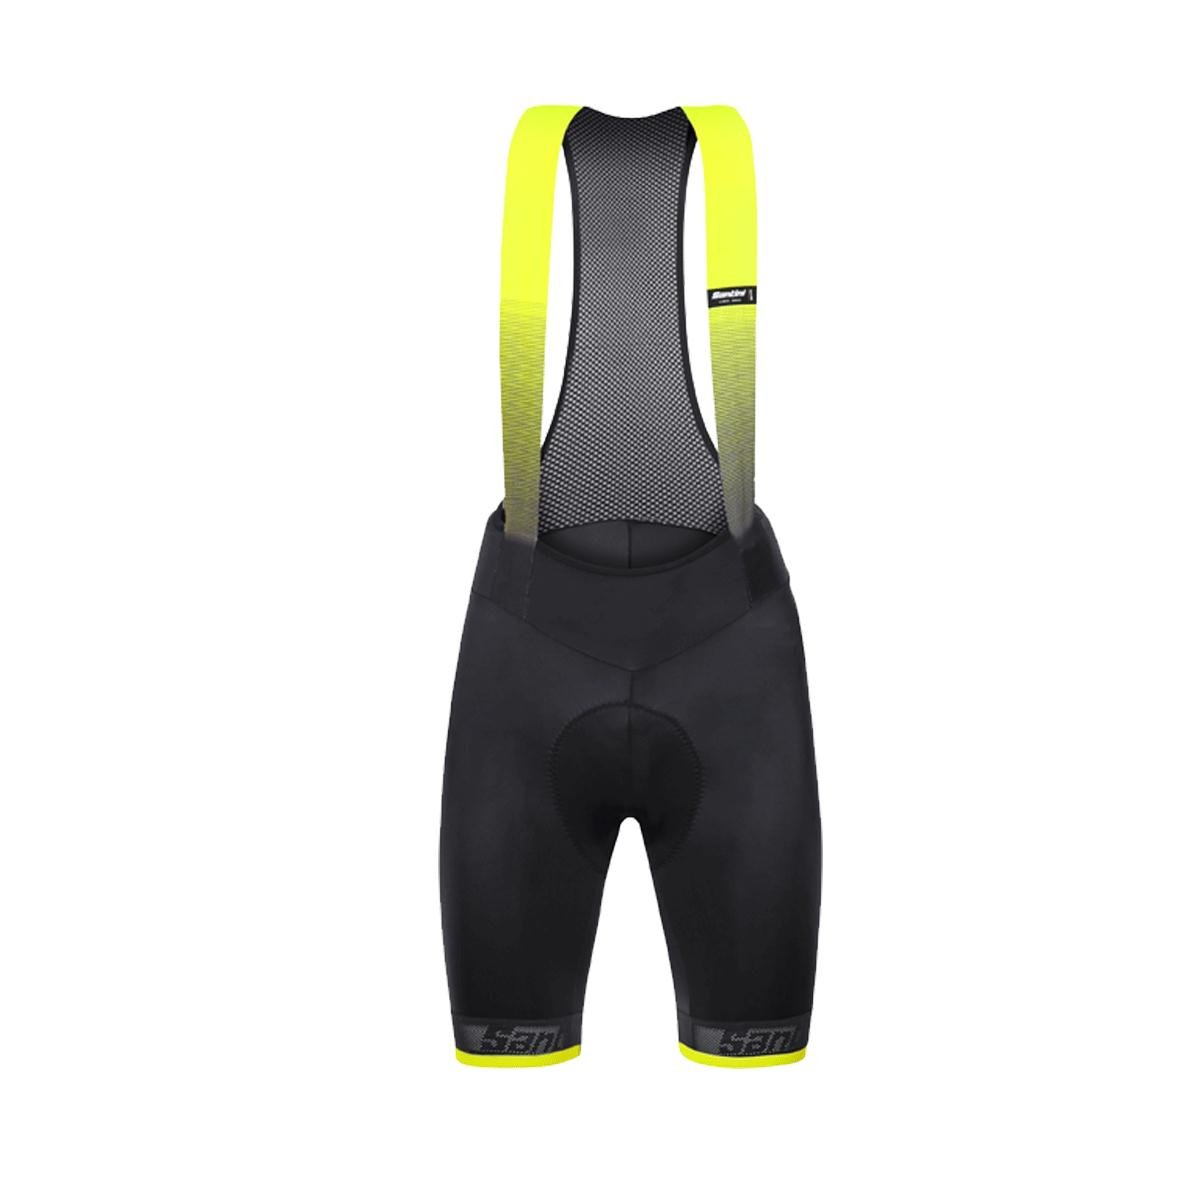 Santini black-yellow 365 Fase Cycling Bib Shorts B07C4VMCCP Medium